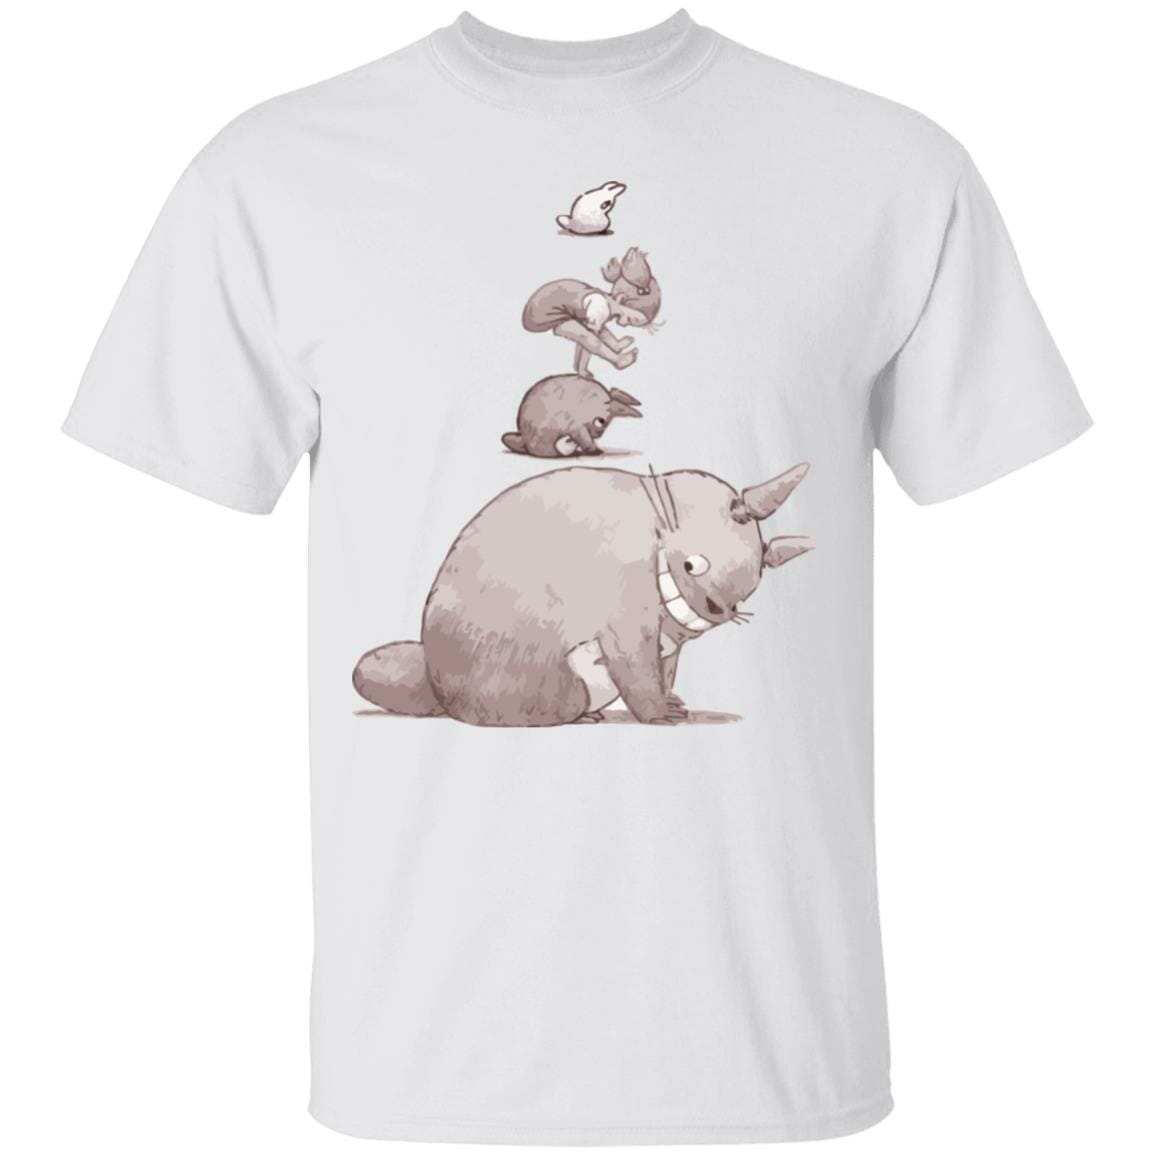 Totoro – Jump over the cow playing T Shirt